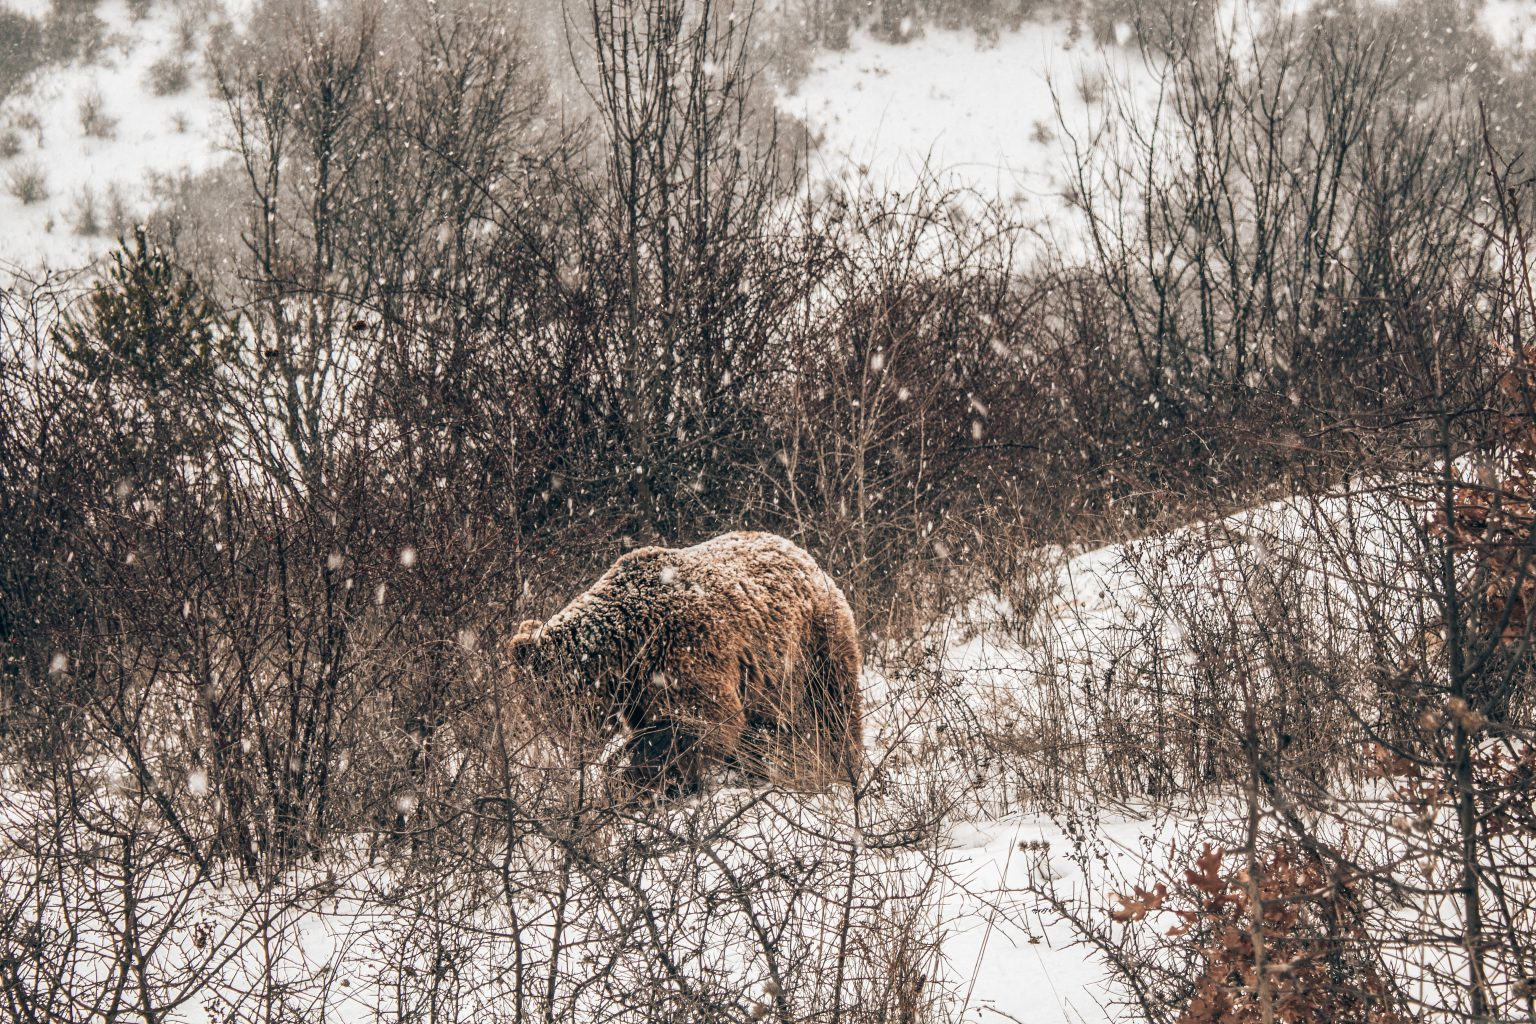 Picture of a brown bear in Kosovo